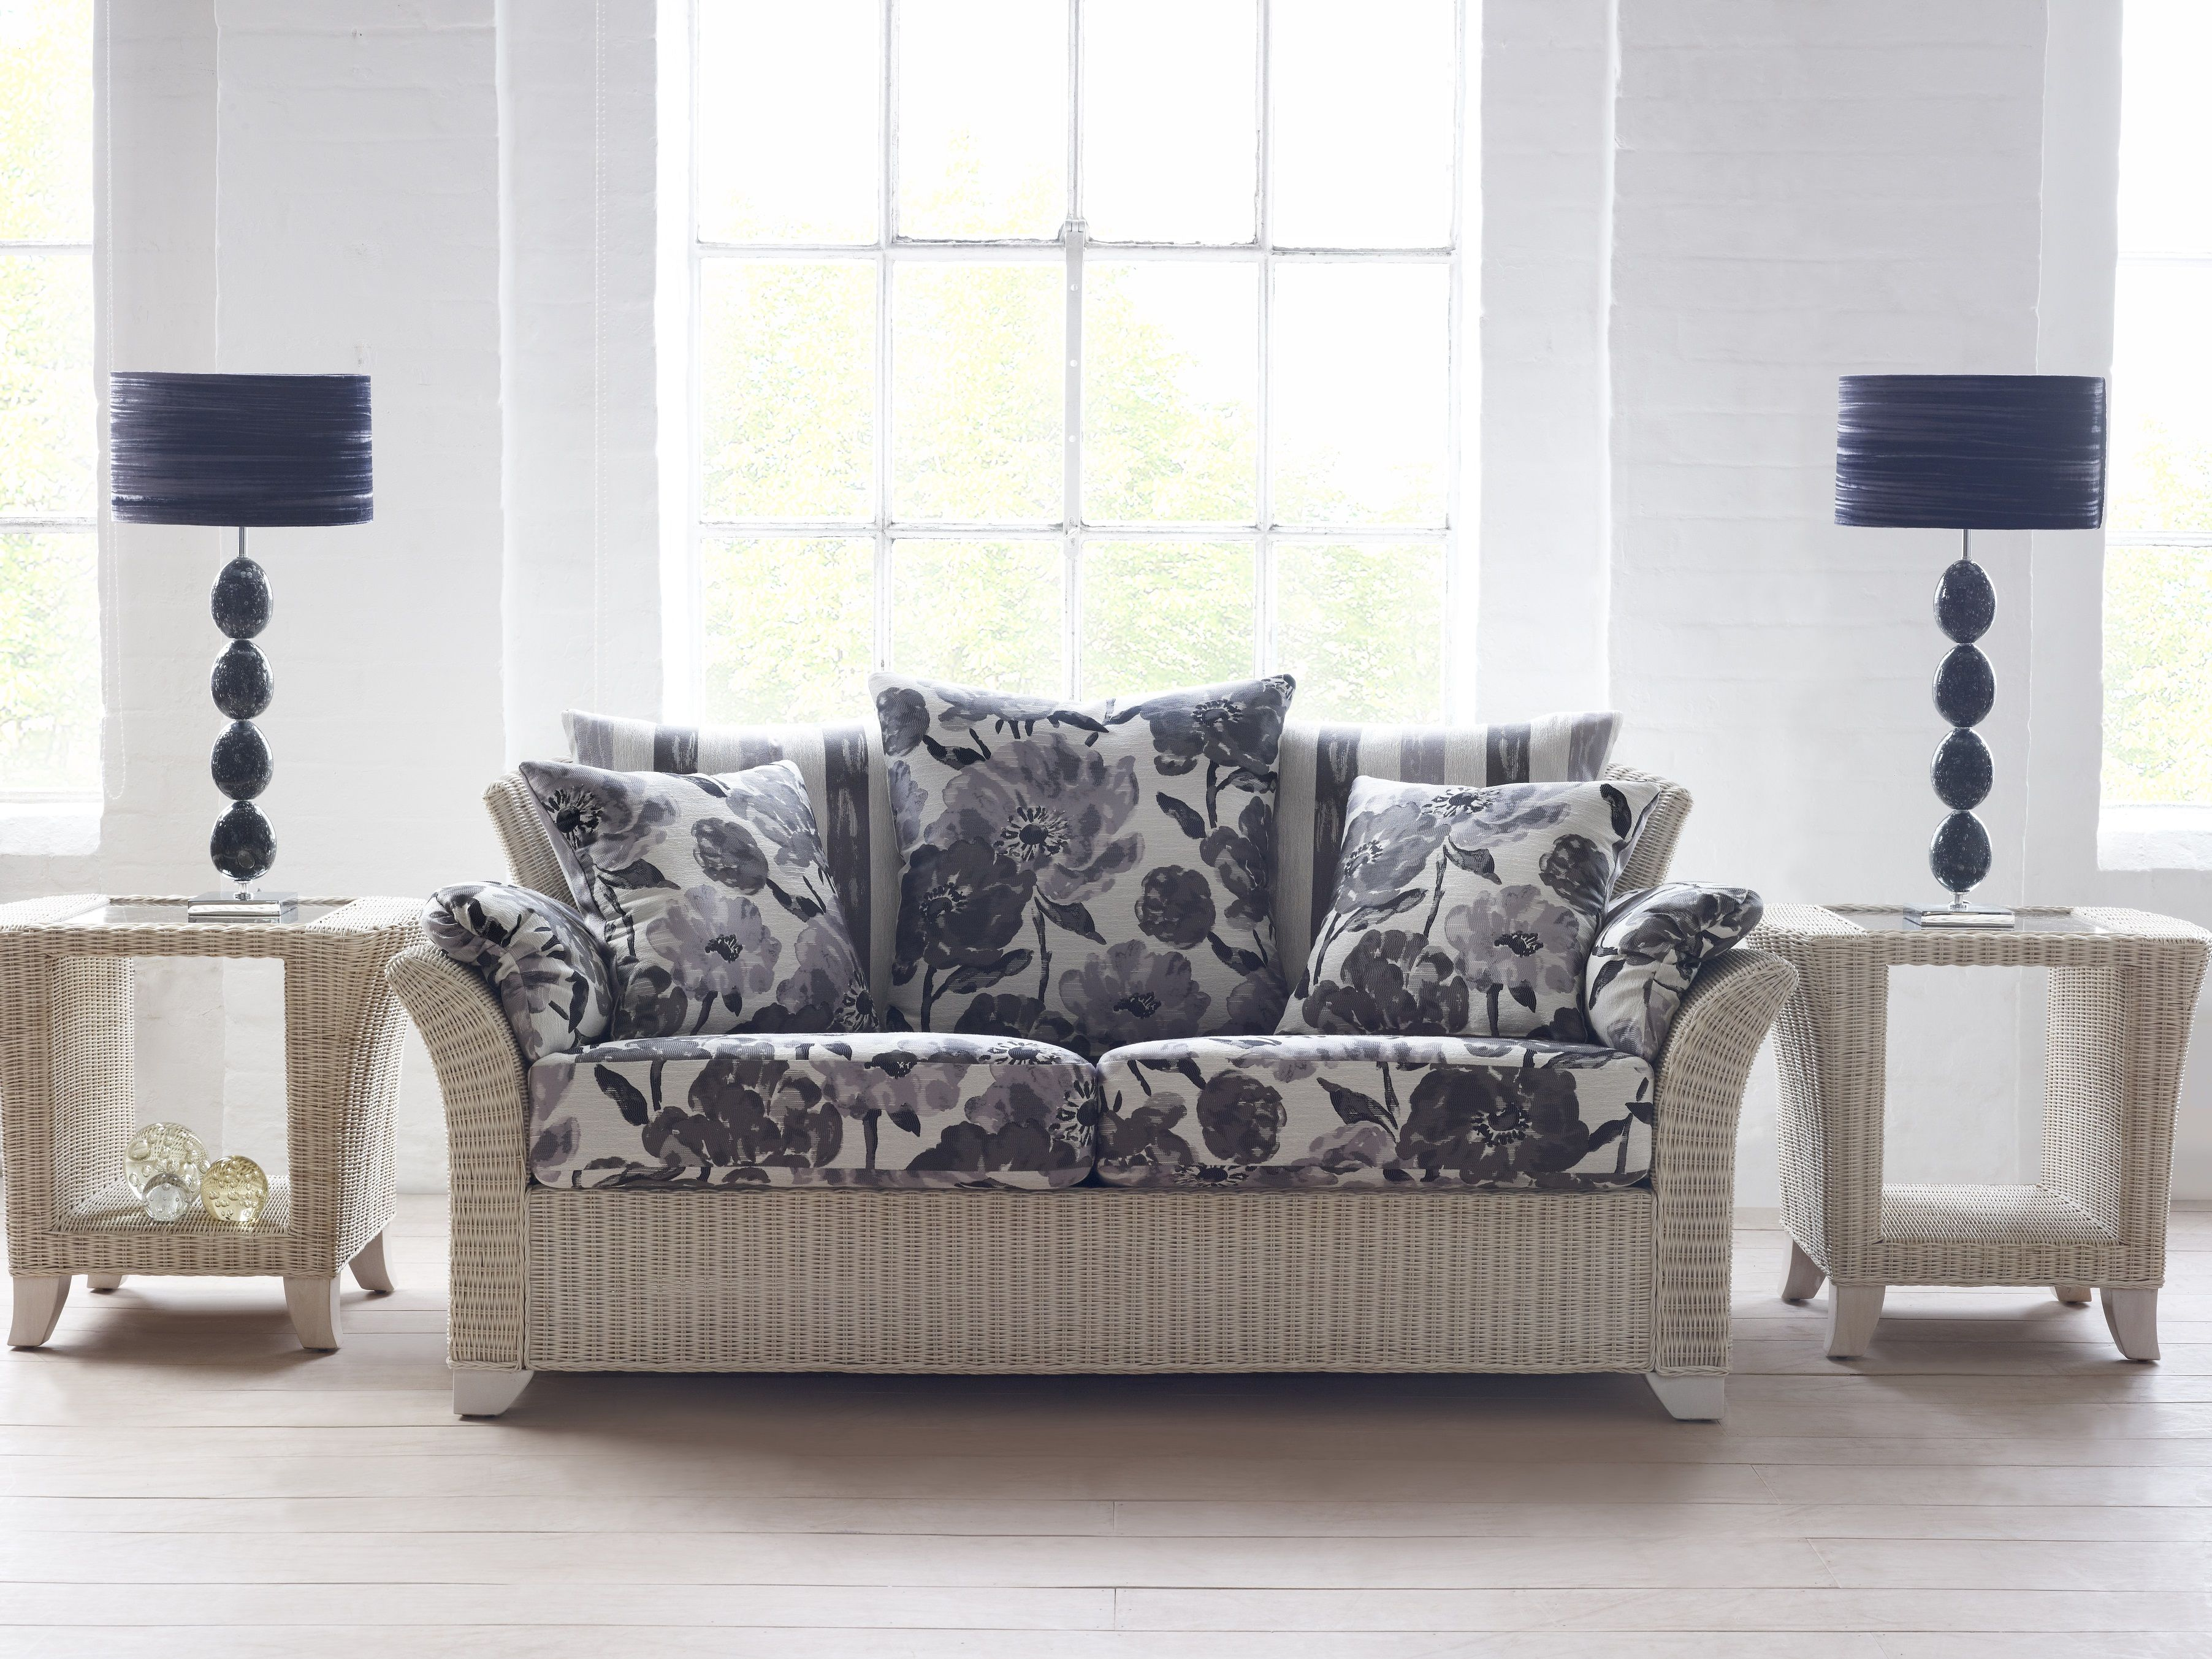 Cane Furniture - indoor outdoor furniture, conservatory, living room, wicker, rattan, hand made, bespoke, cushions, home décor. Arona Sofa with Side Tables. Call 01582 727123 for more info.